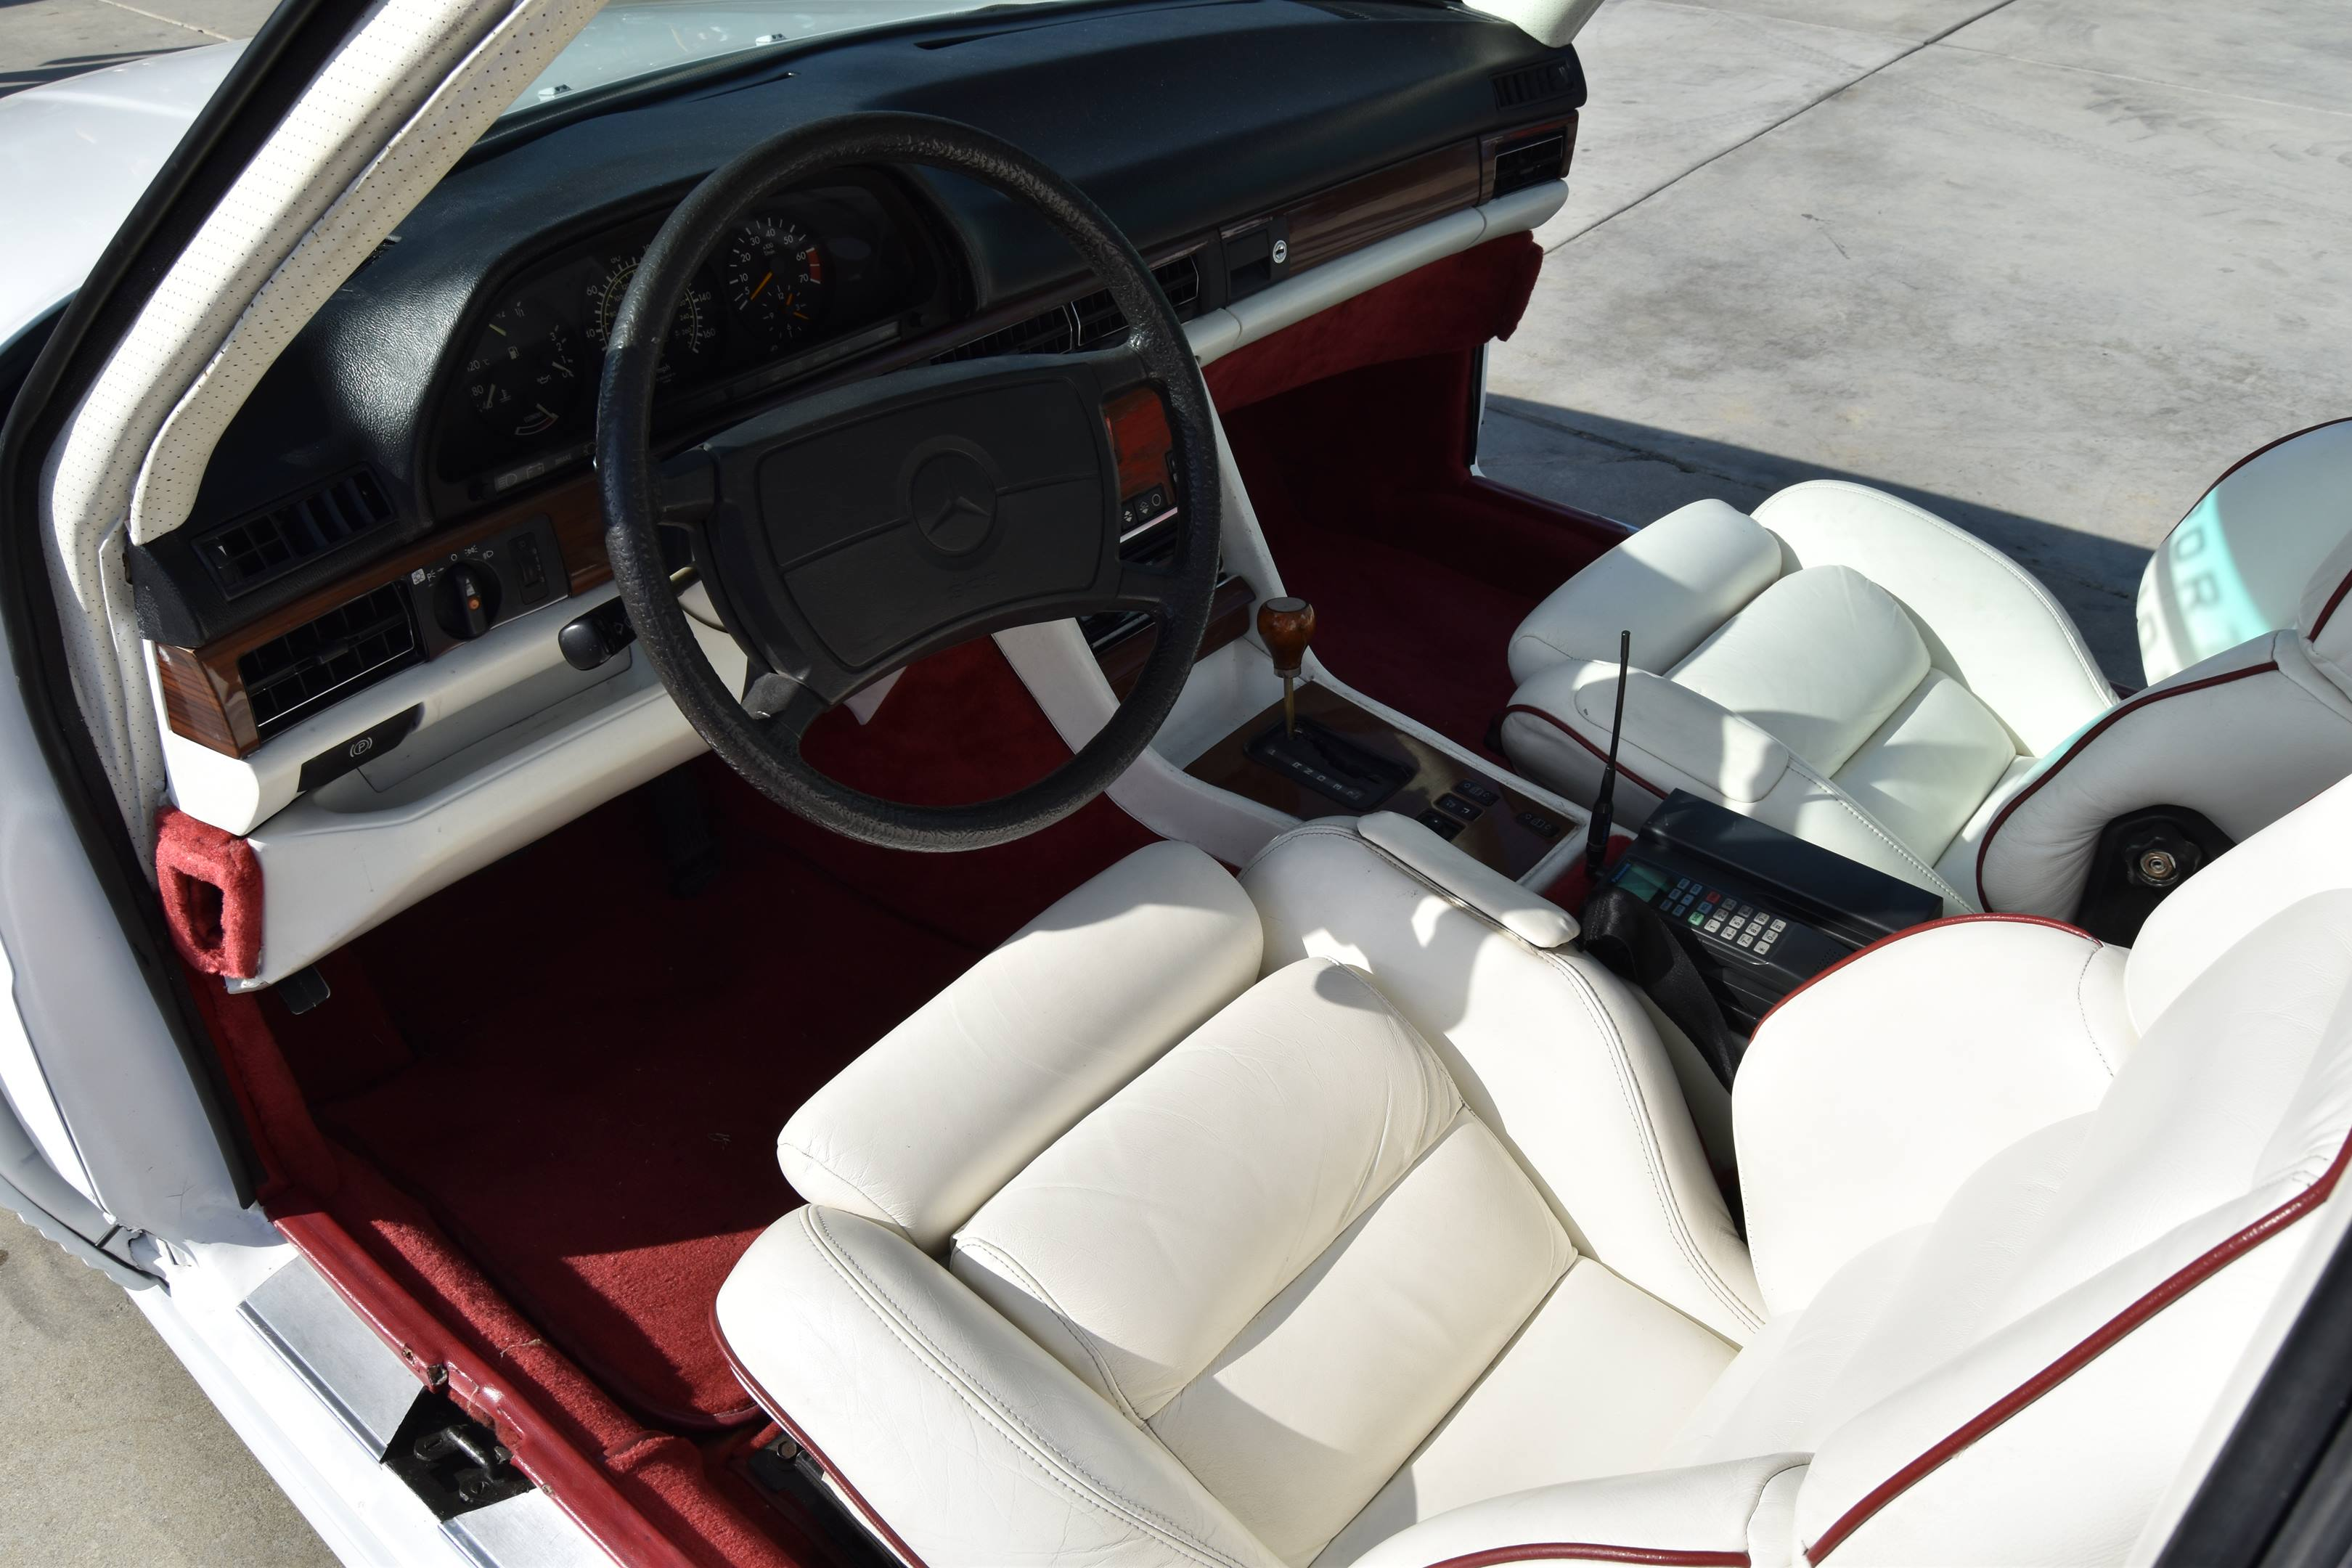 1983 Mercedes-Benz 500SEC Gullwing interior